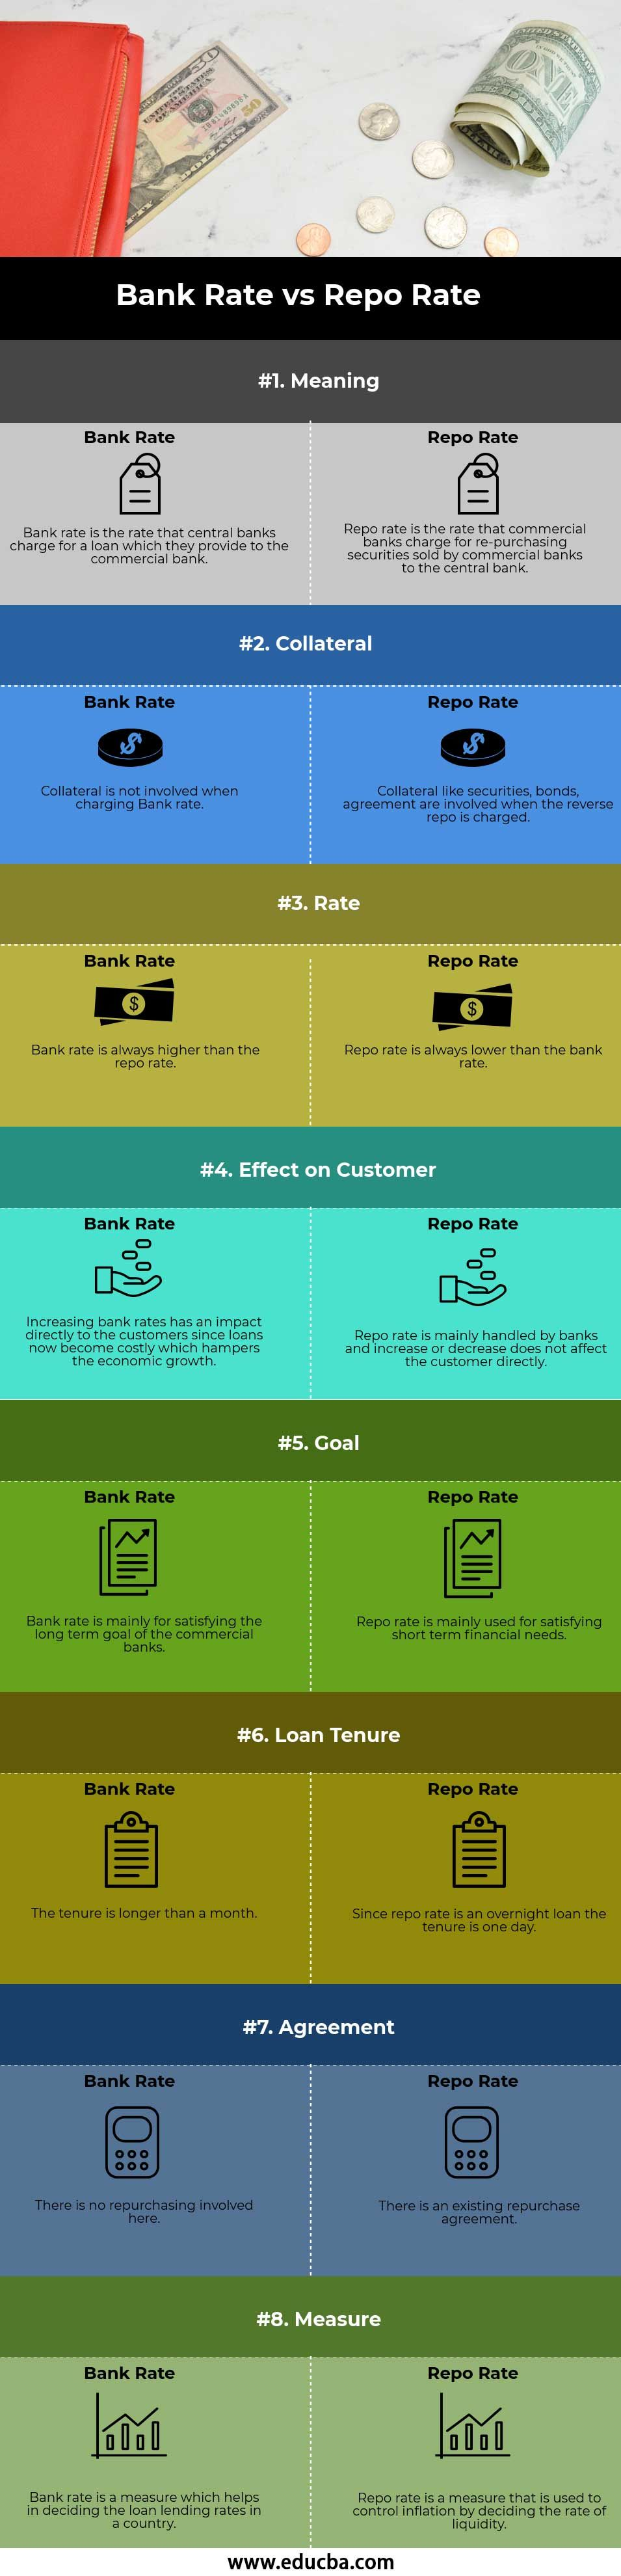 Bank Rate Vs Repo Rate Bank Rate Meant To Be Finance